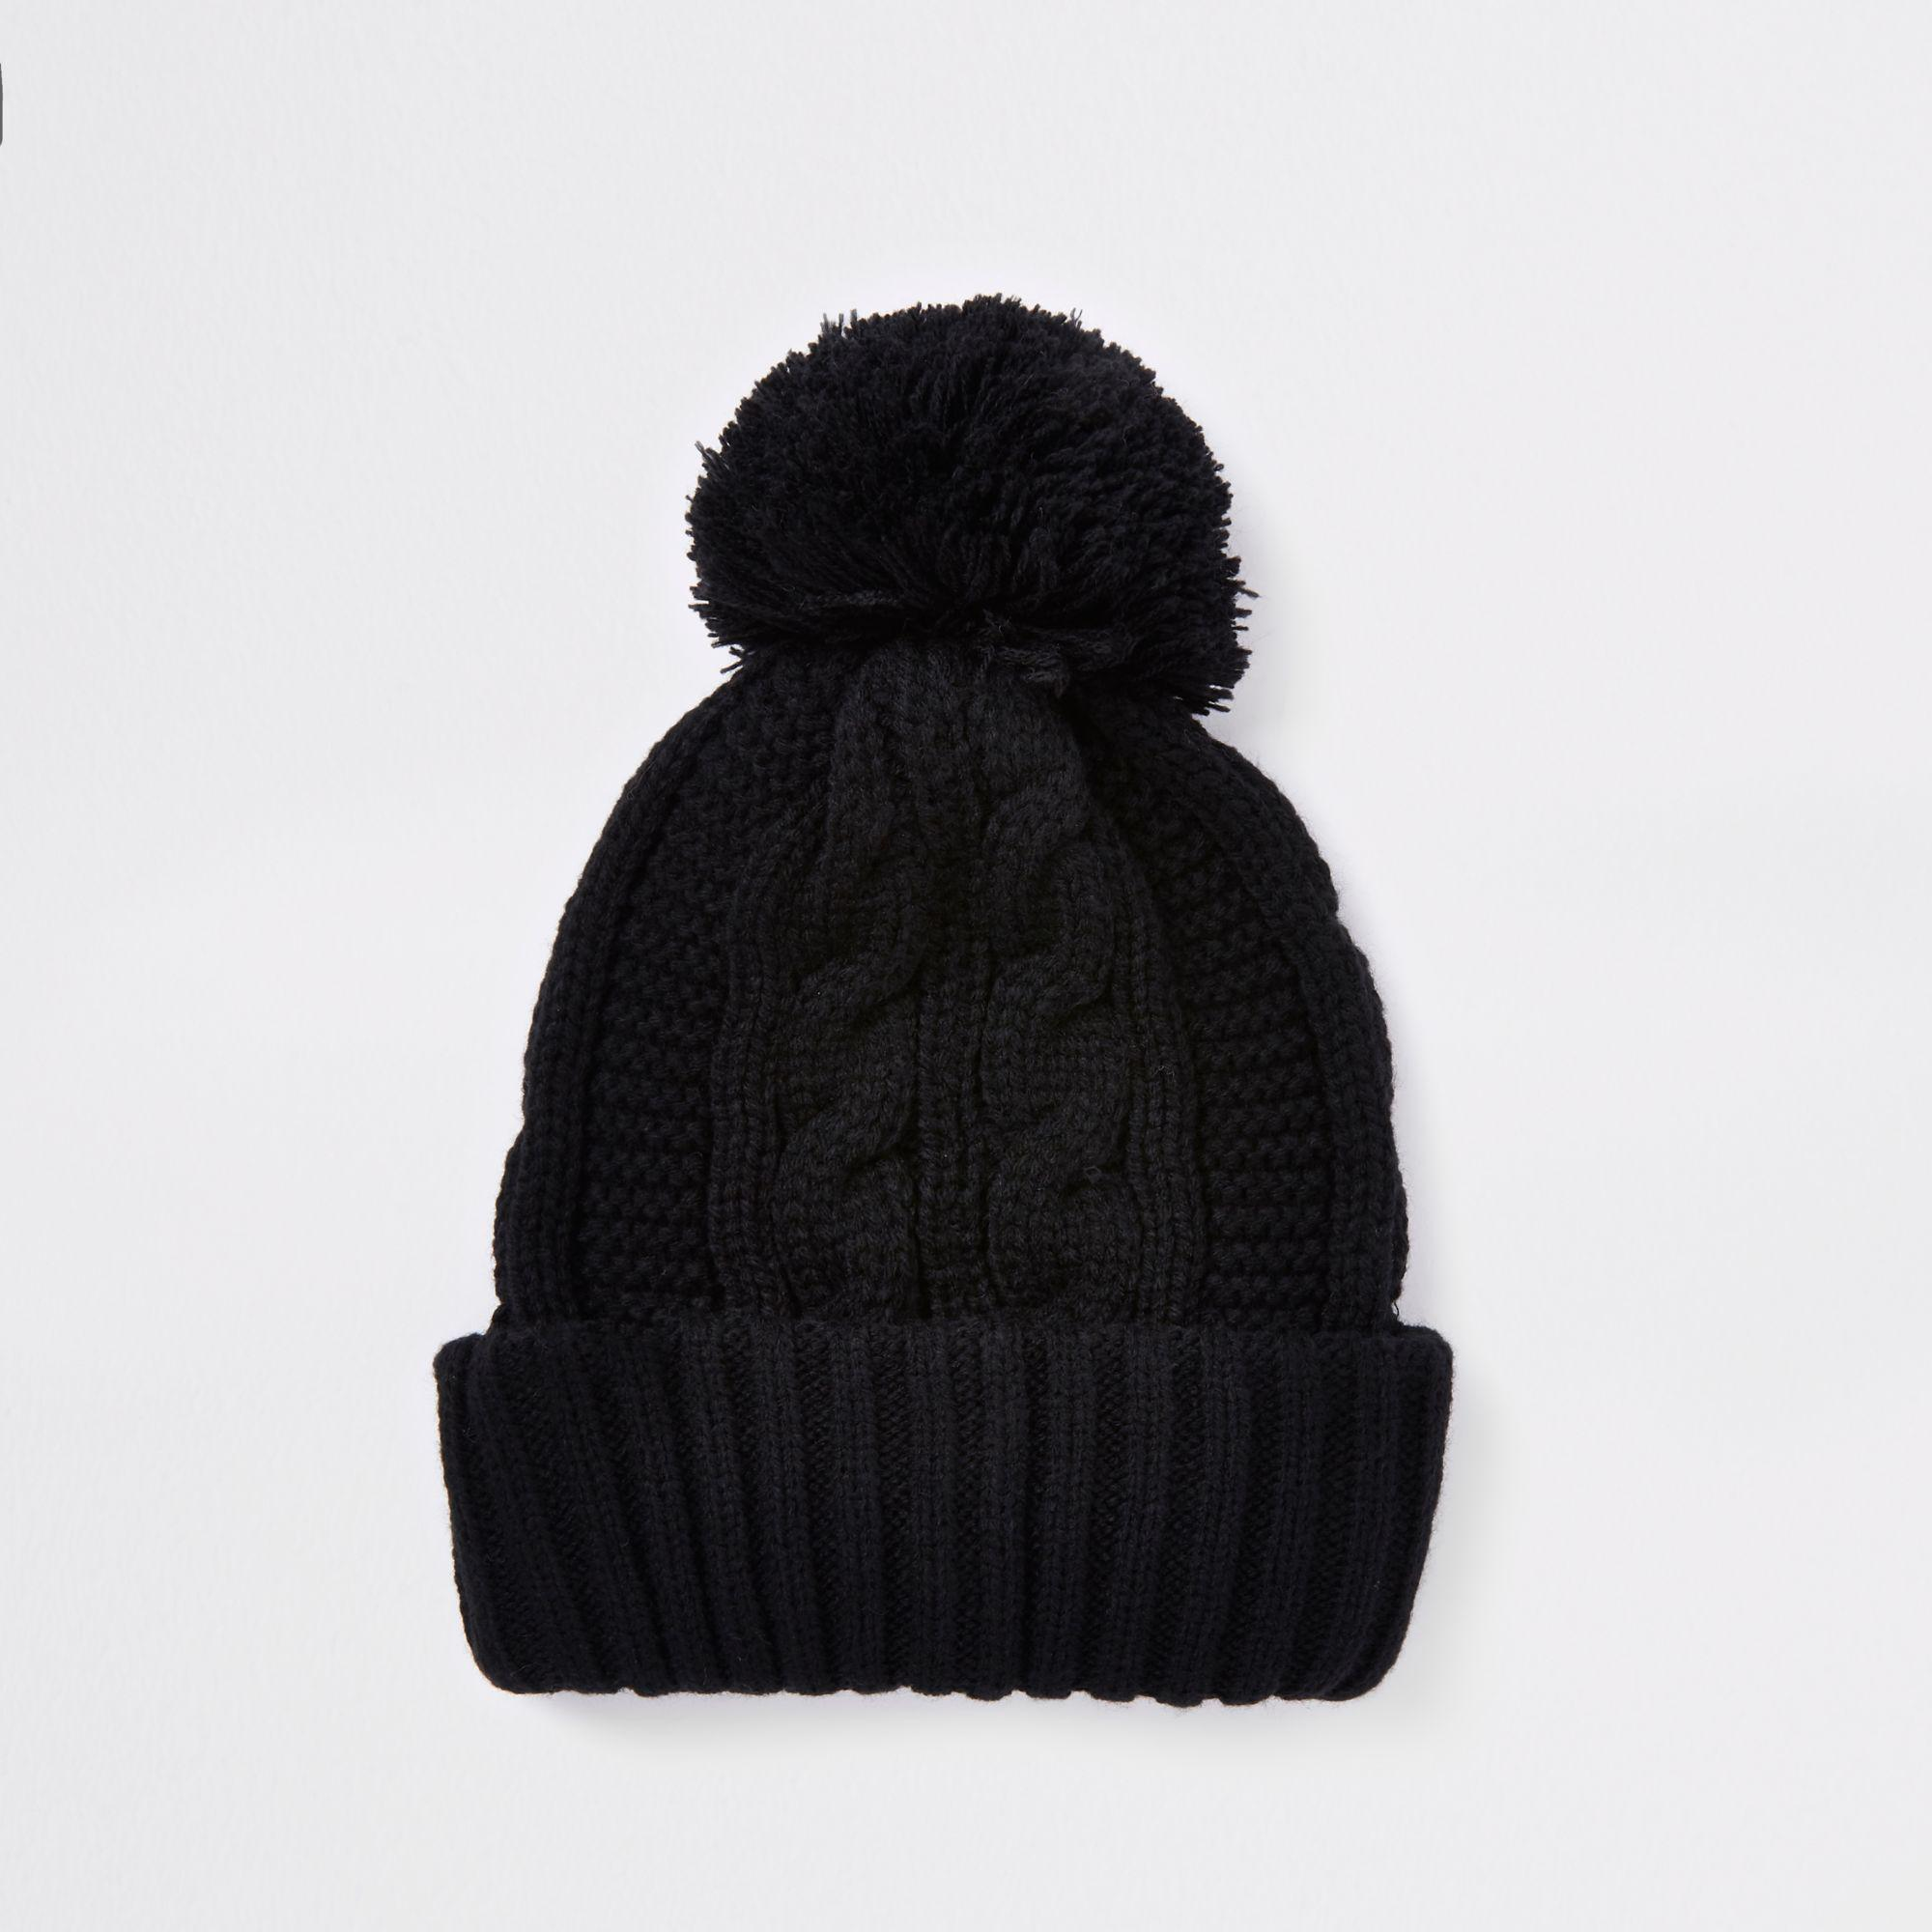 d3f42952466 Lyst - River Island Cable Knit Bobble Beanie Hat in Black for Men